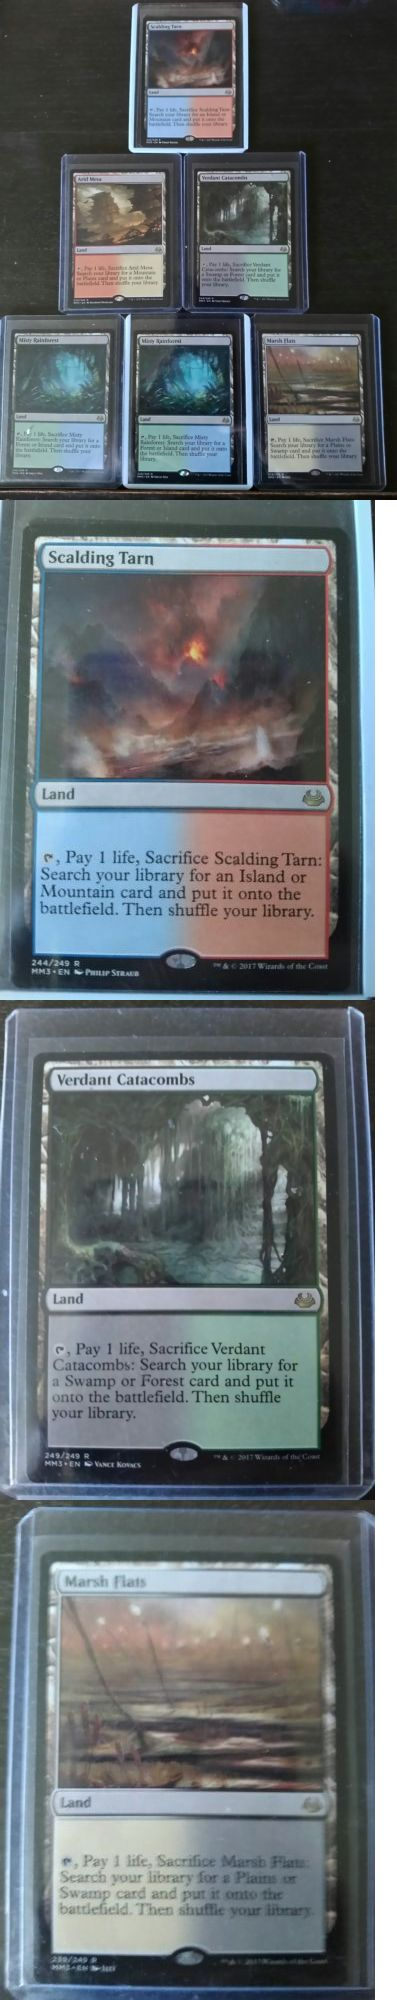 MTG Mixed Card Lots 19113: All 5 Fetch Lands + Extra Magic The Gathering Mm17 Mint! -> BUY IT NOW ONLY: $220 on eBay!